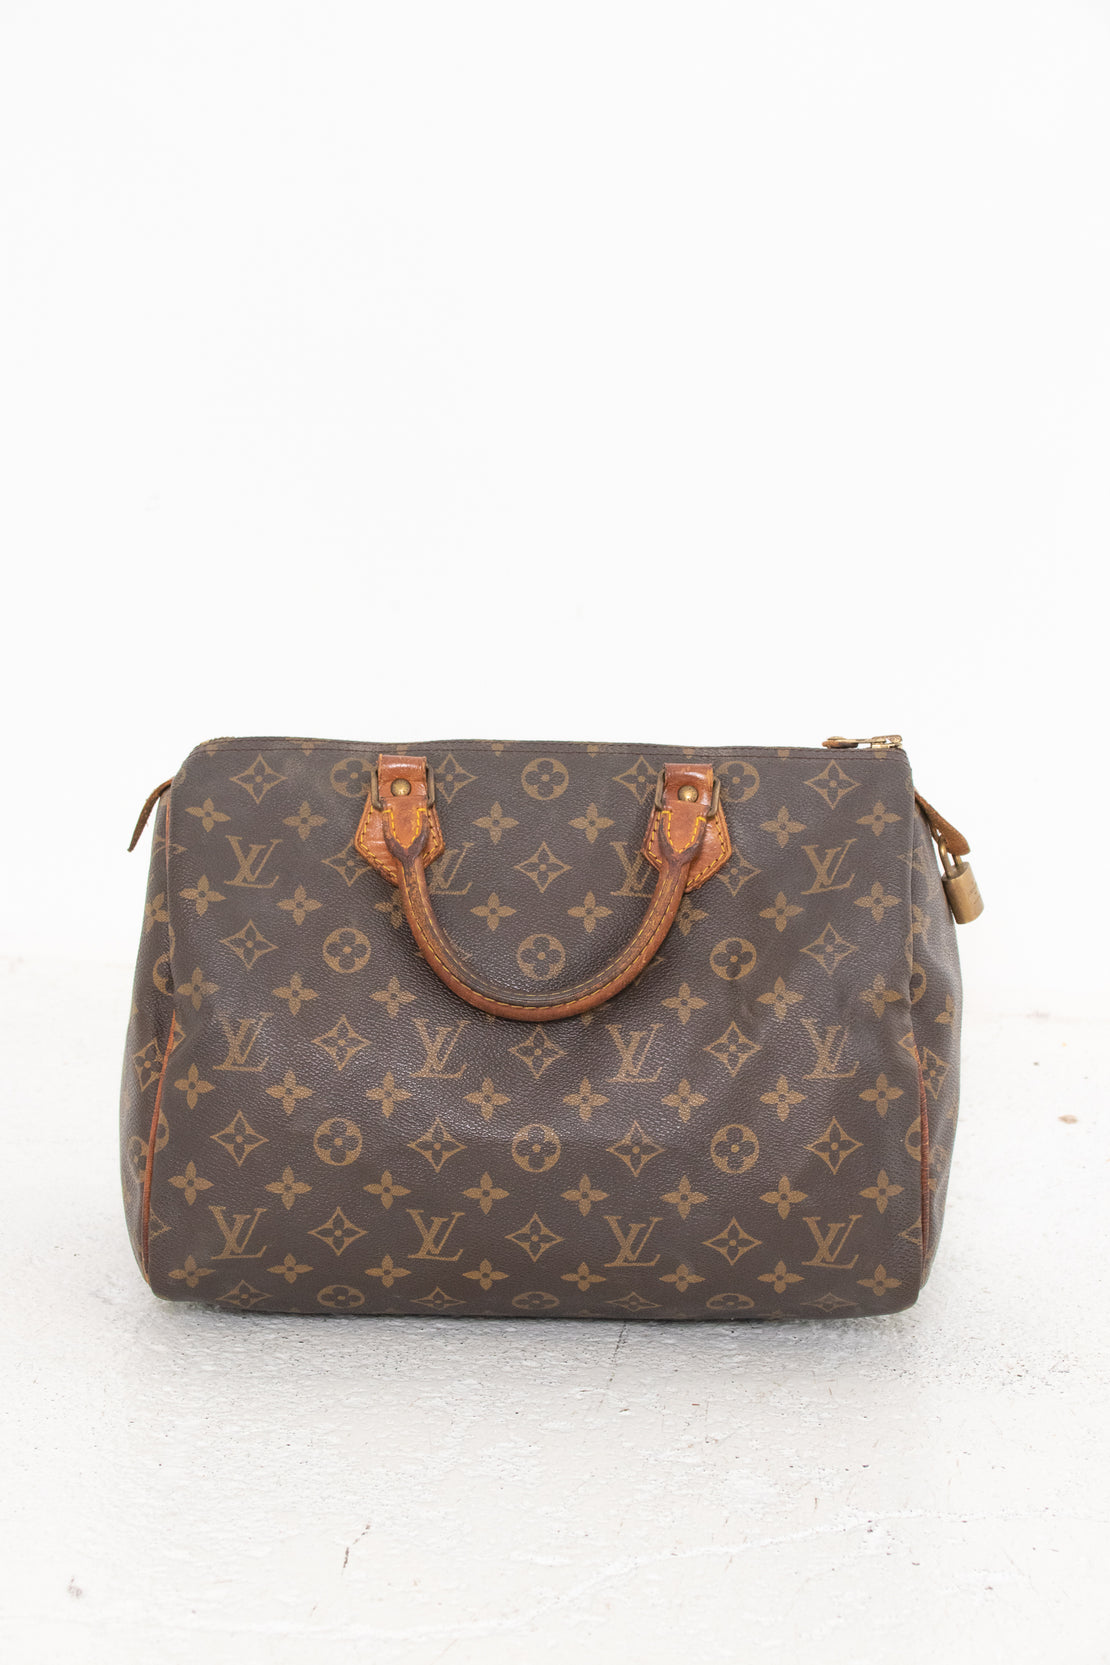 Louis Vuitton Monogram Speedy Boston Bag